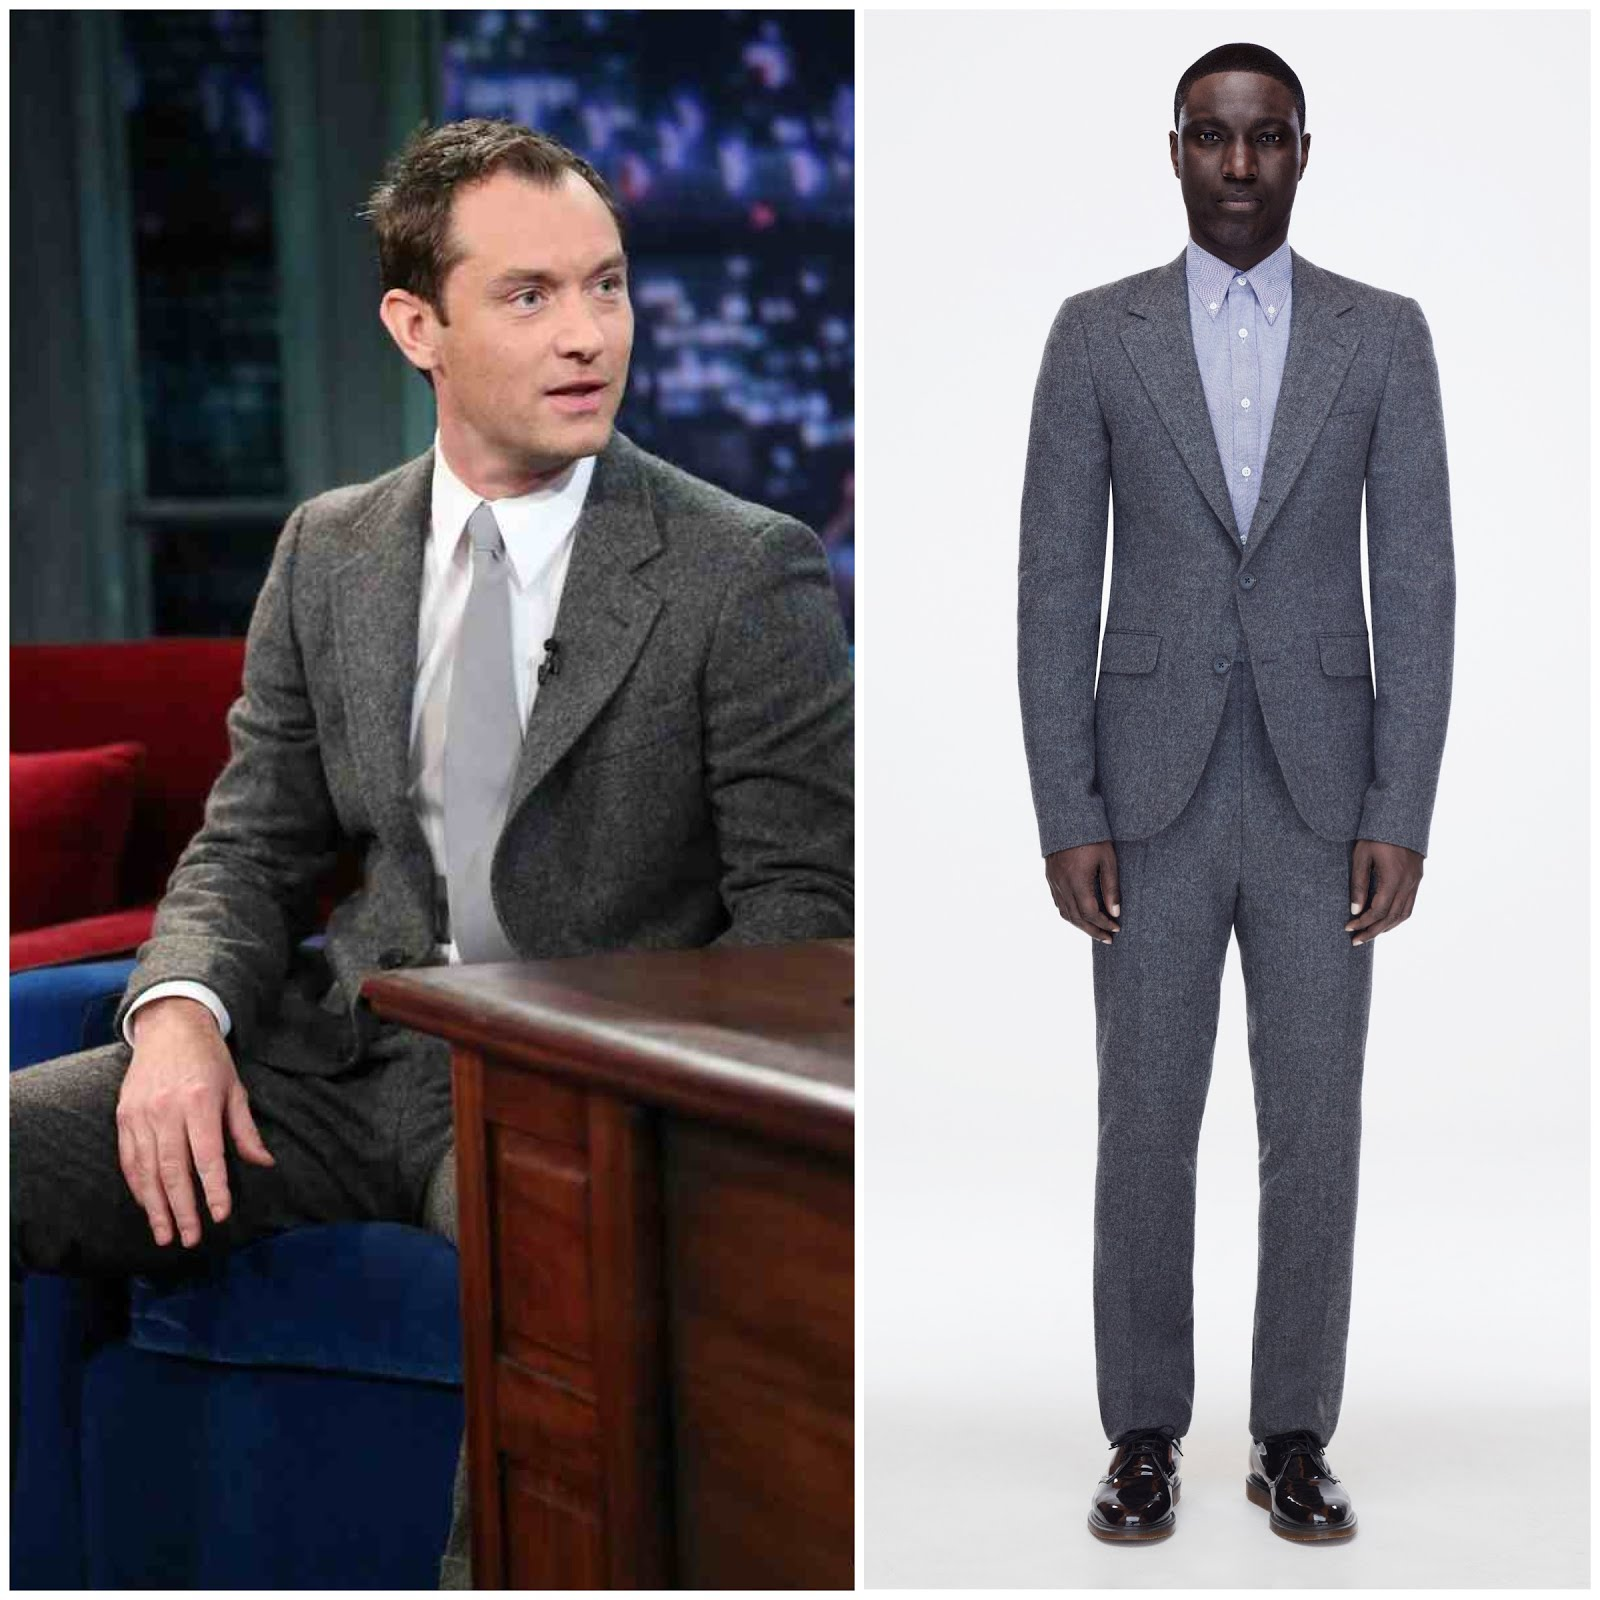 00O00 Menswear Blog Jude Law in A. Sauvage (@THISISNOTASUIT) - 'Late Night with Jimmy Fallon'